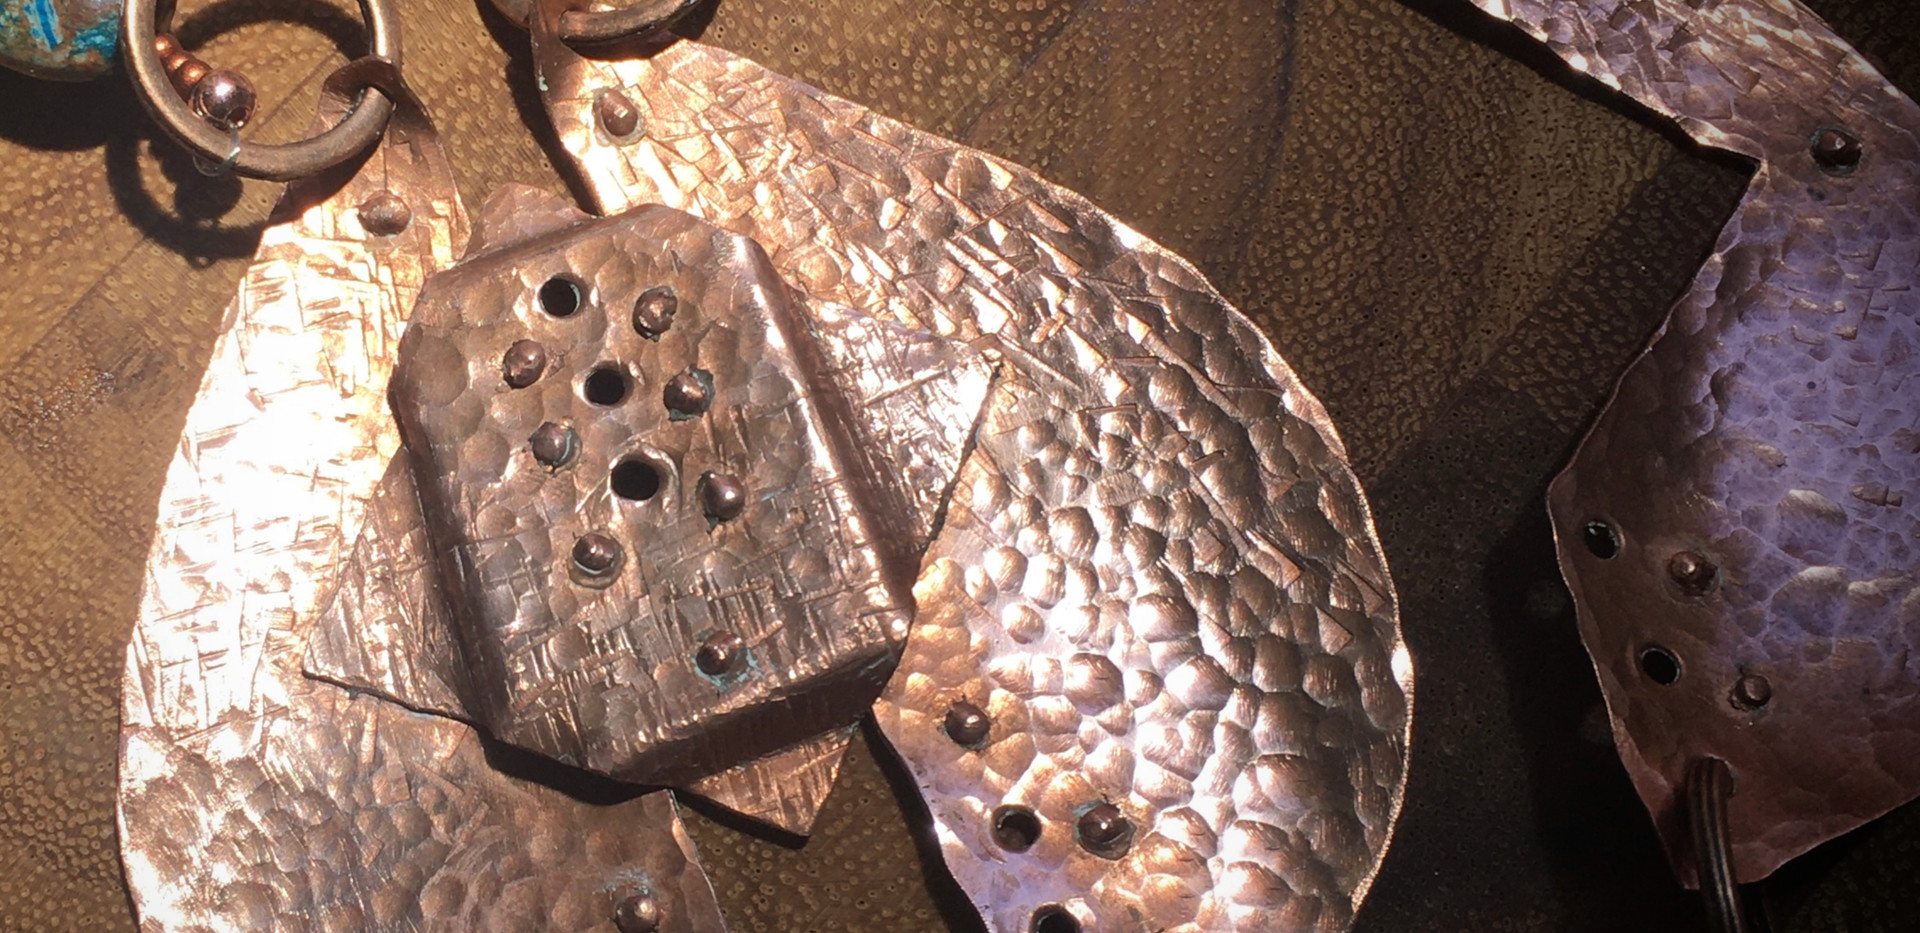 Hammered Copper and Apaptite